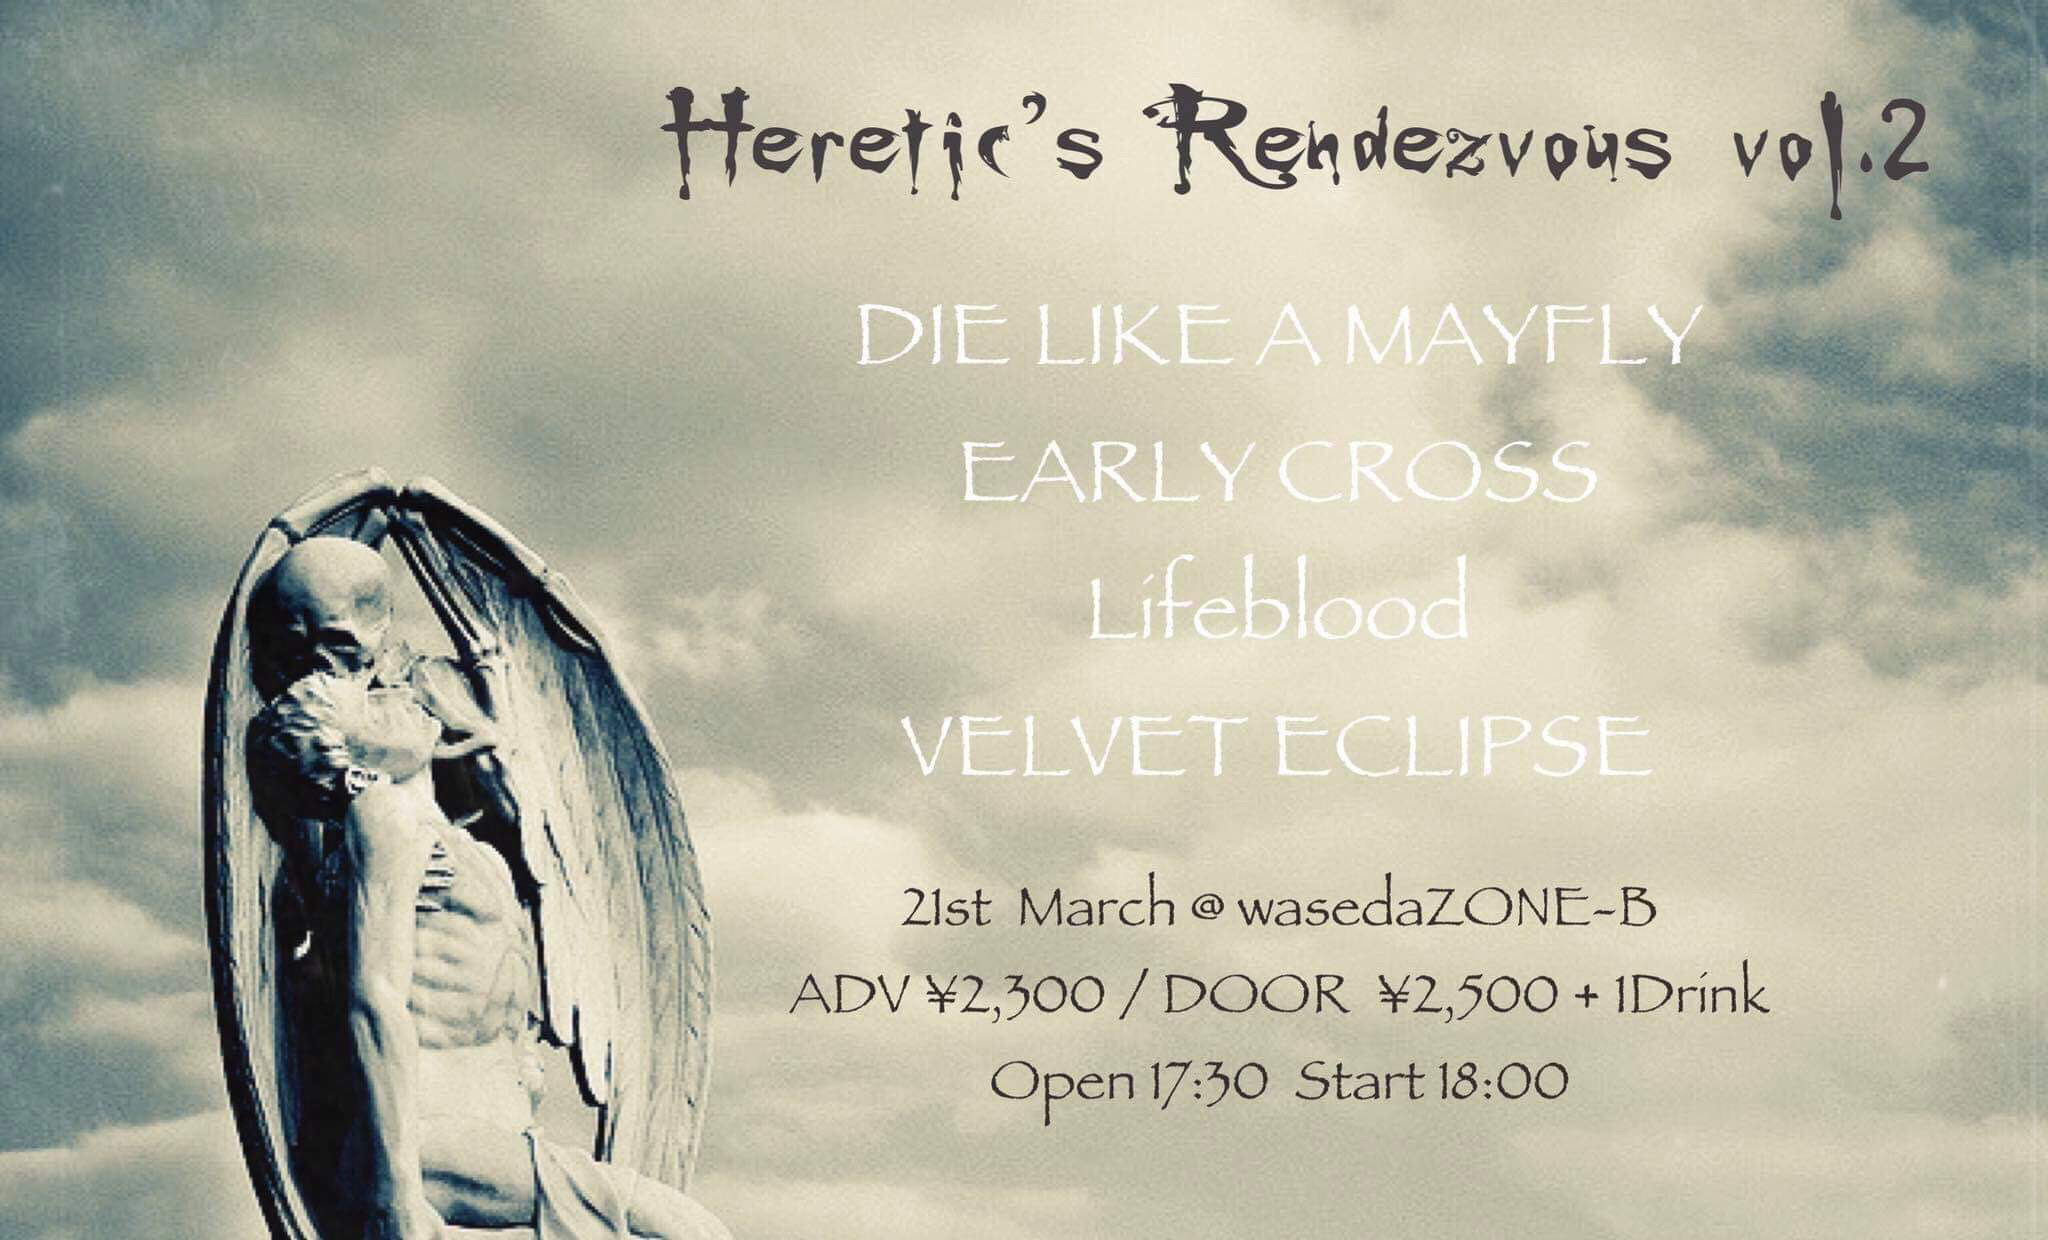 Heretic's Rendezvous vol.2